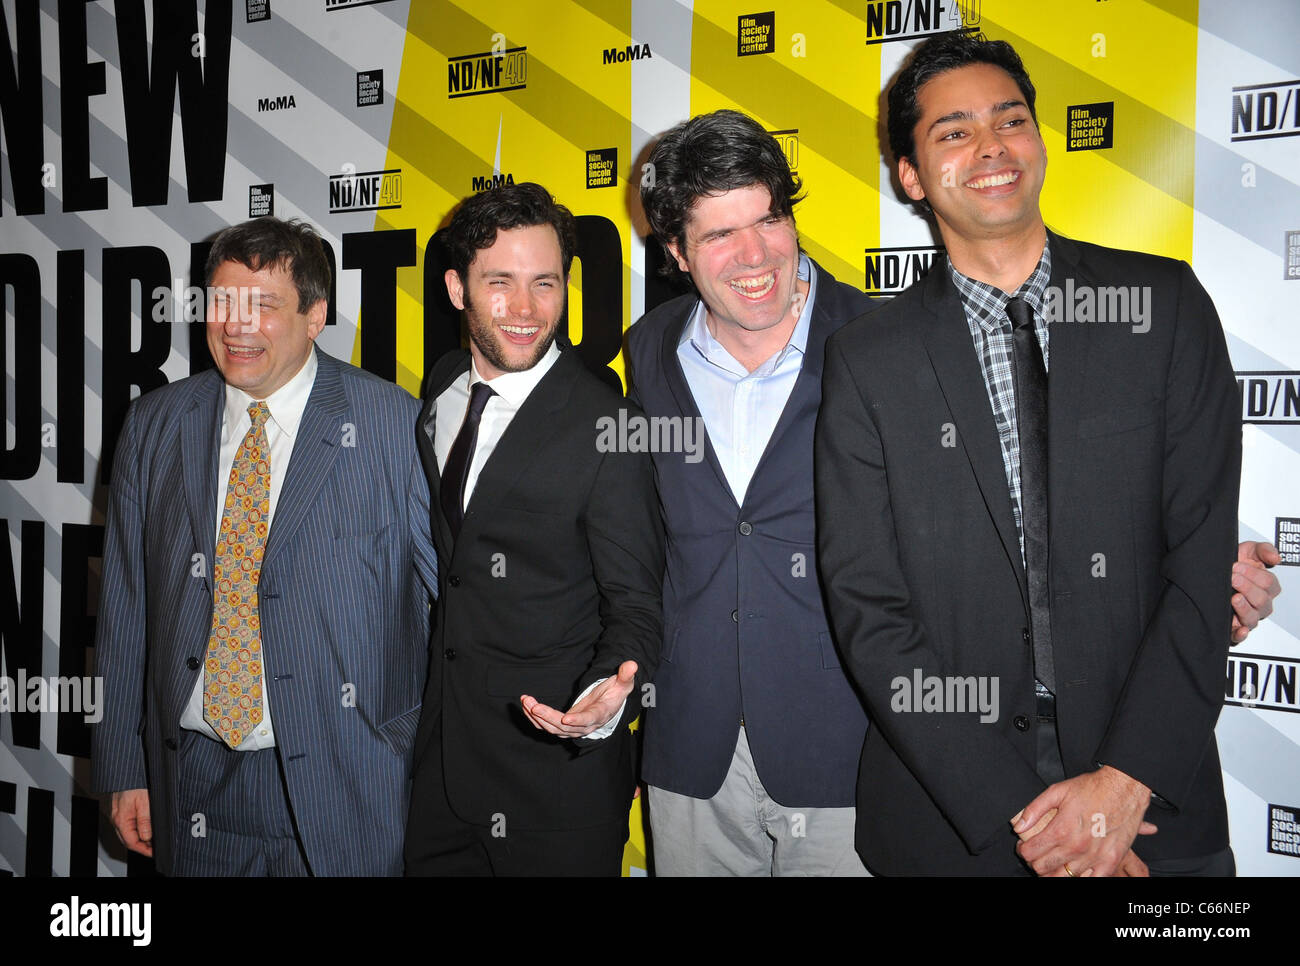 Richard Pena, Penn Badgley, J.C. Chandor, Raj Roy at arrivals for MARGIN CALL Premiere, MoMA Museum of Modern Art, - Stock Image